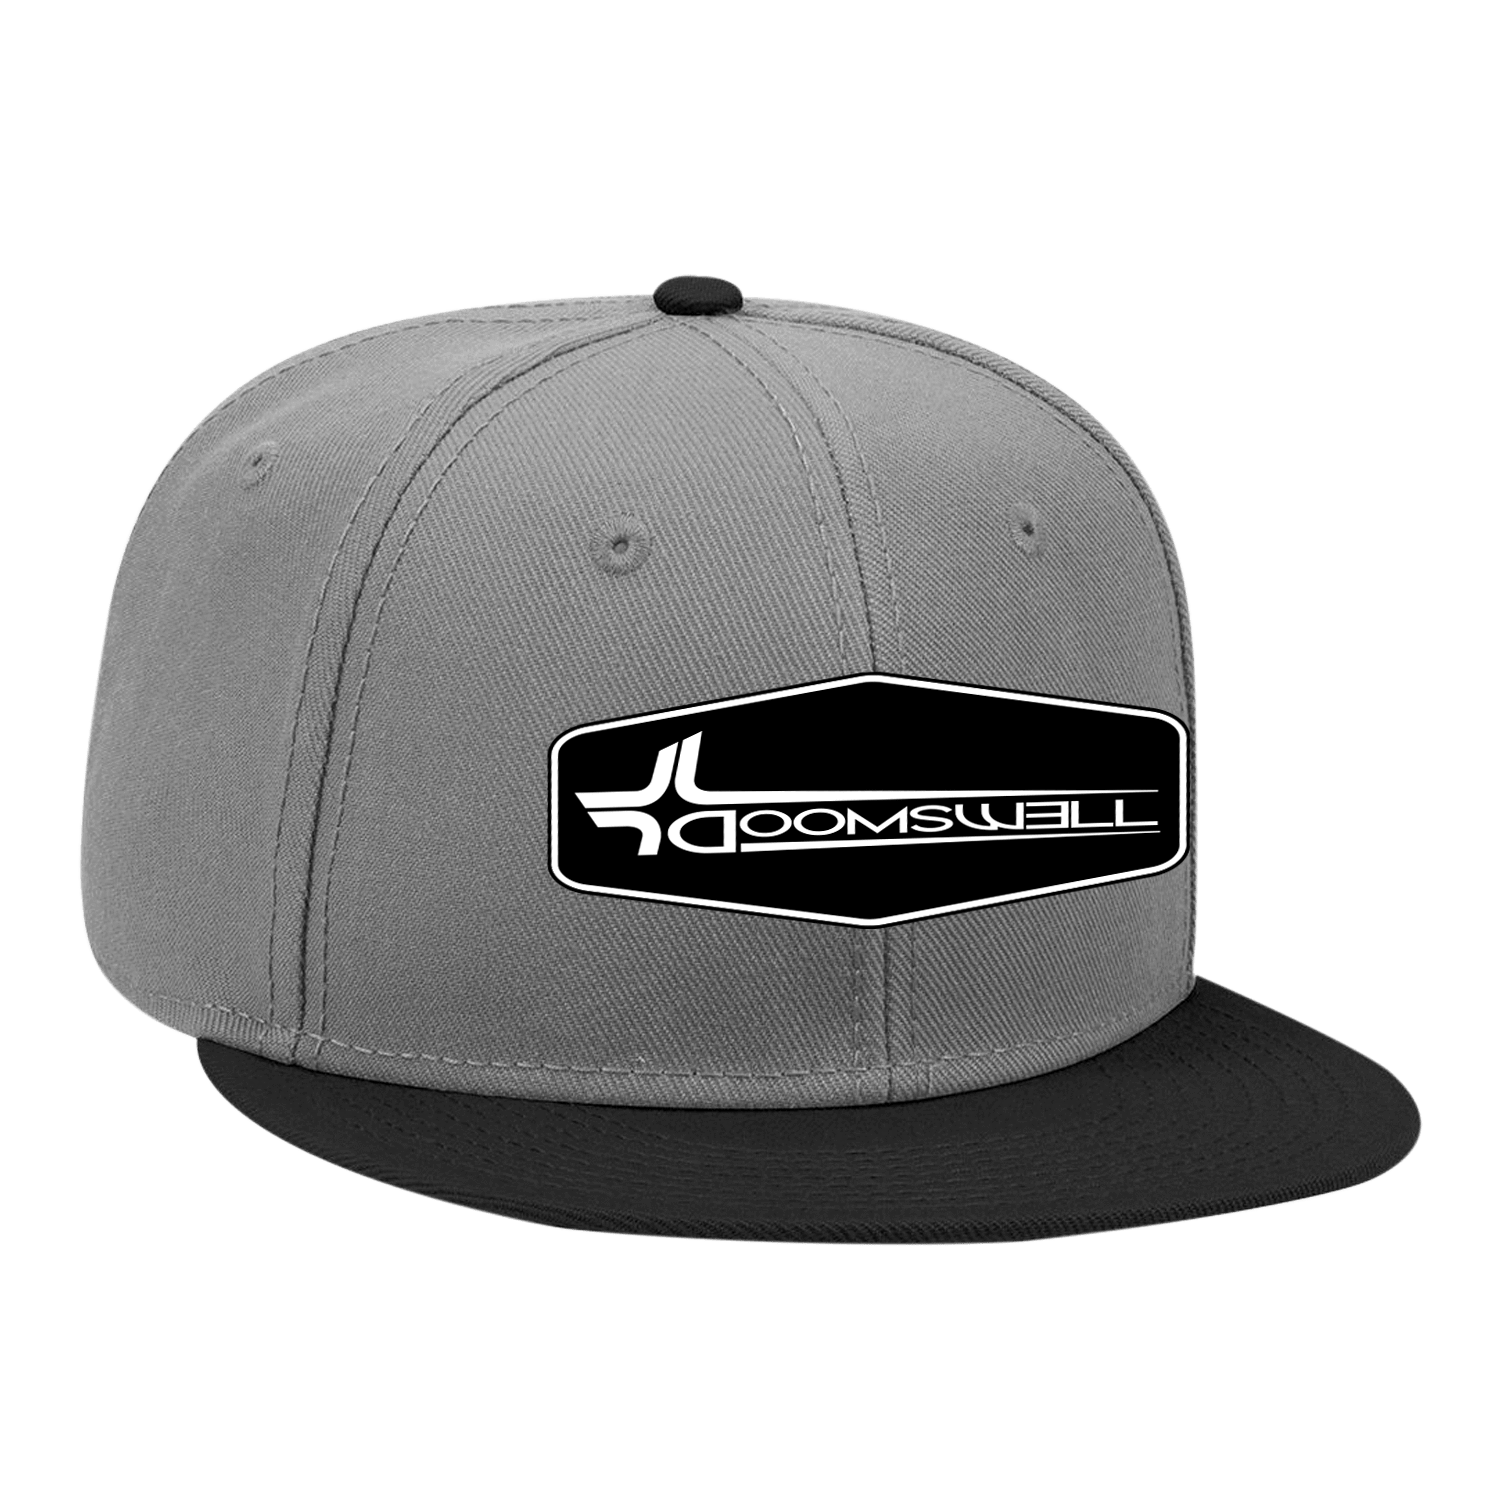 Doomswell Boarding Co. Hats Grey OG Hat-Grey